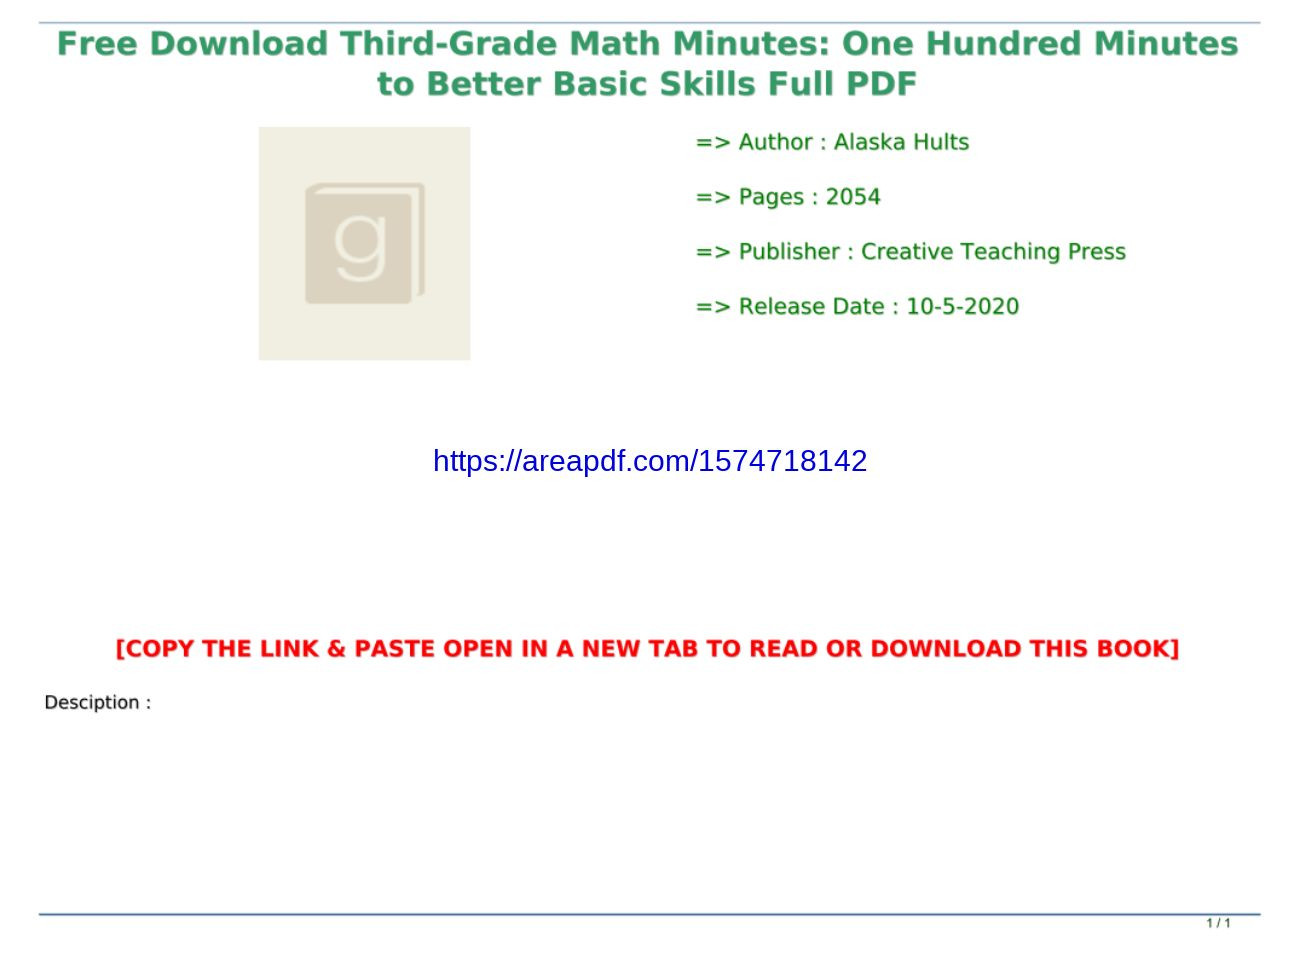 Third Grade Math Minutes Pdf Free Download Third Grade Math Minutes E Hundred Minutes